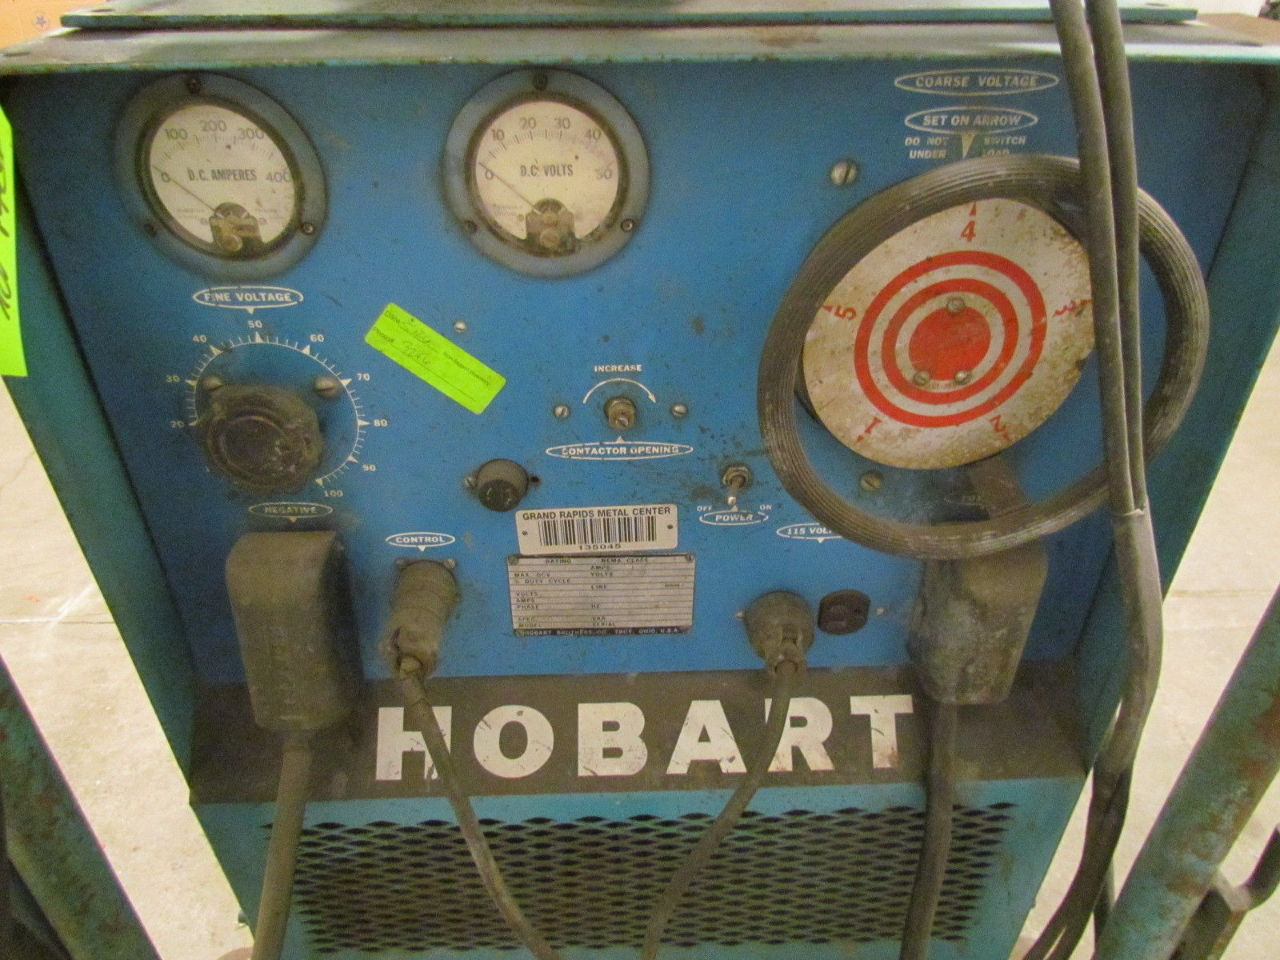 hobart rc 300 manual current web page is effectively is nice its age hate scrap it but coarse voltage selector broken hobart tr 300 hf manual form 10 94 corporation ridge